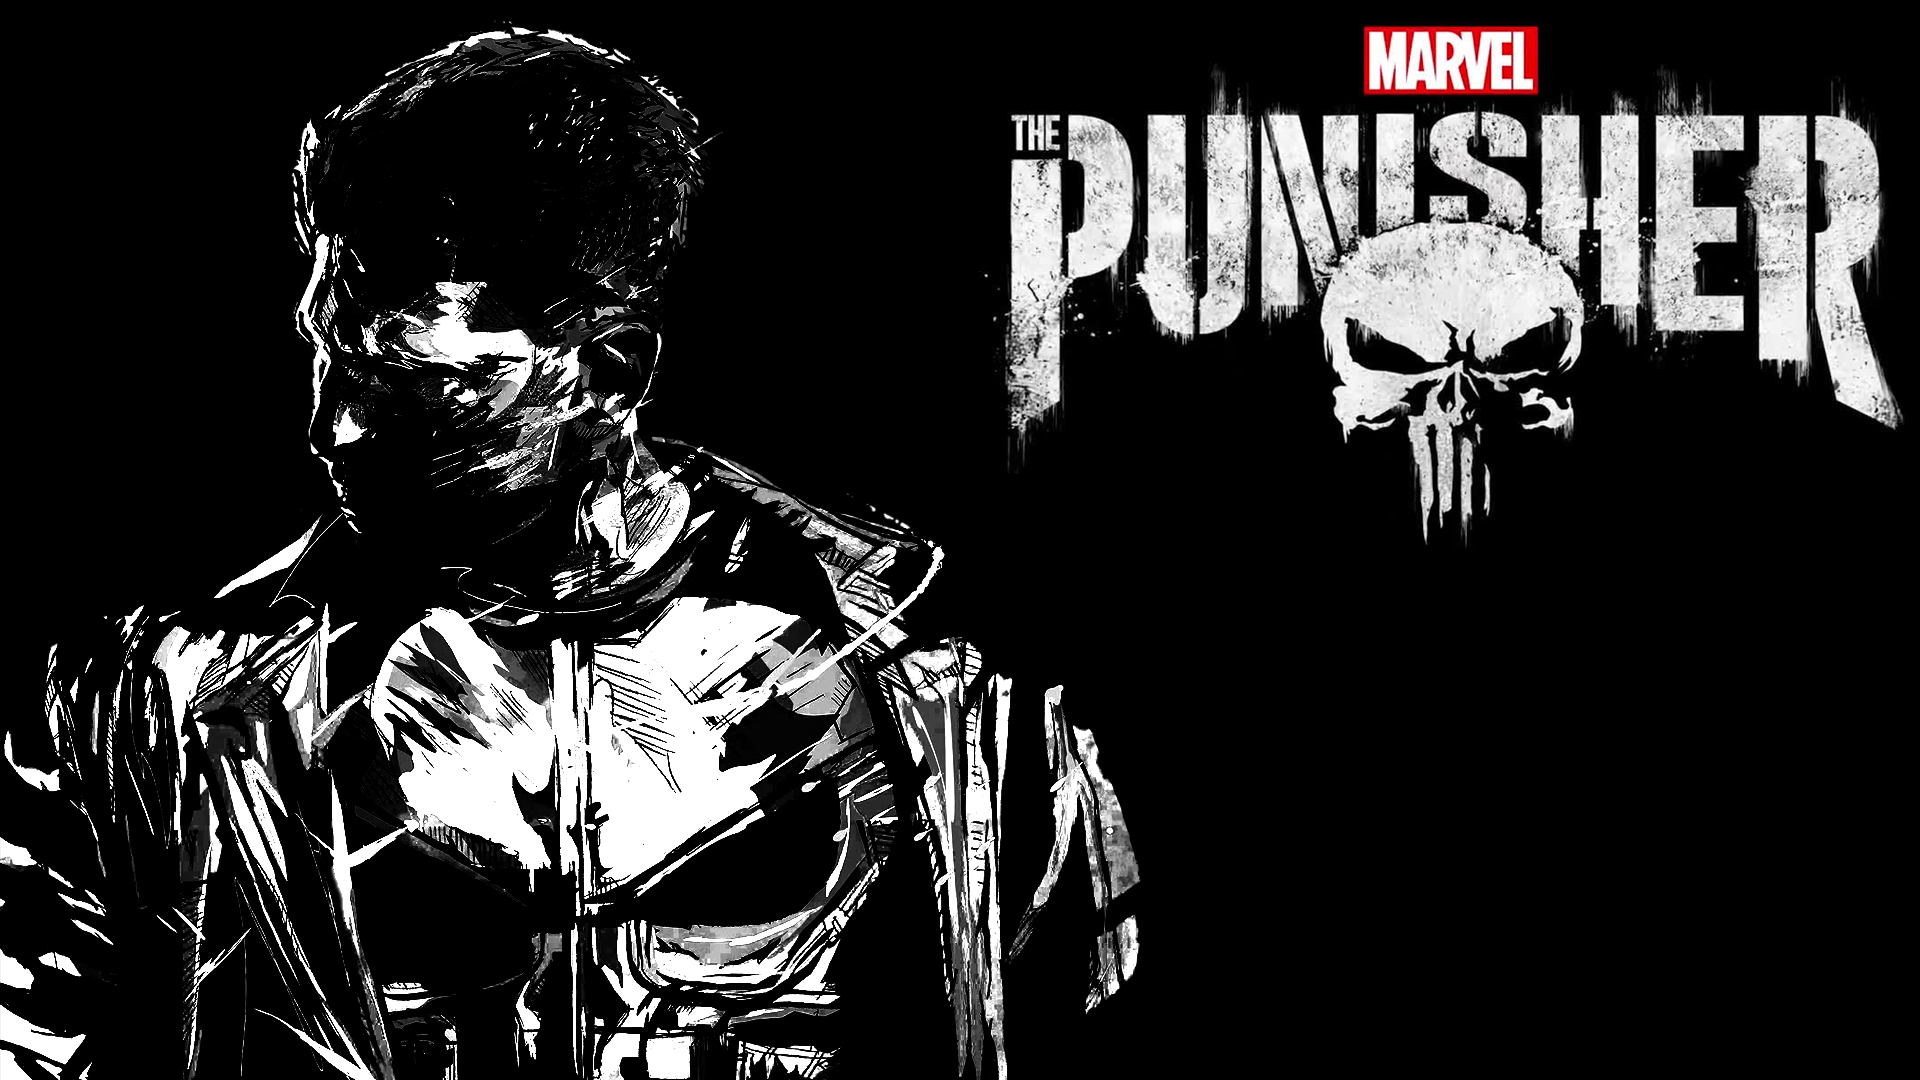 Marvel Police Punisher Military Wallpaper Www Topsimages Com